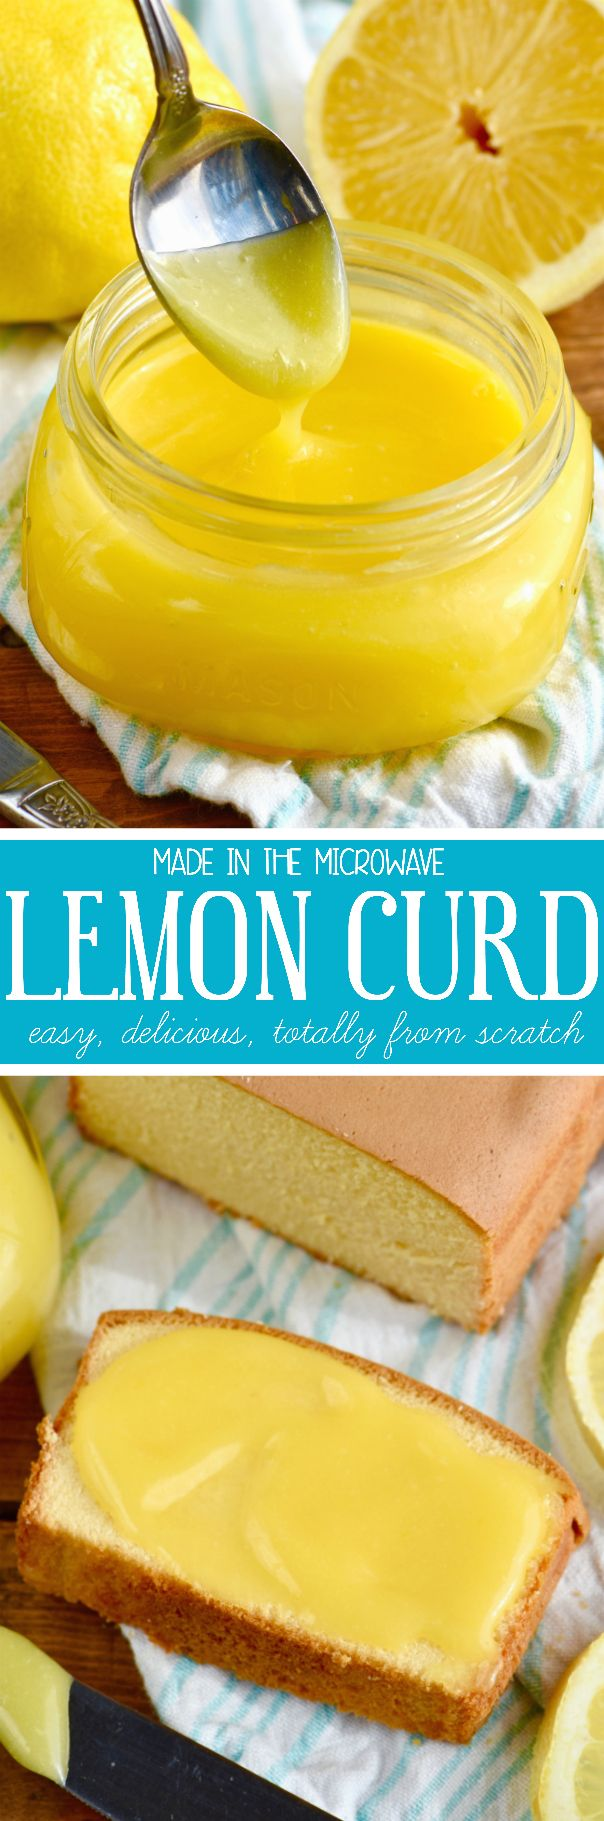 This Easy Microwave Lemon Curd is made with super basic ingredients and is so delicious! Use it in recipes or put it on bread!